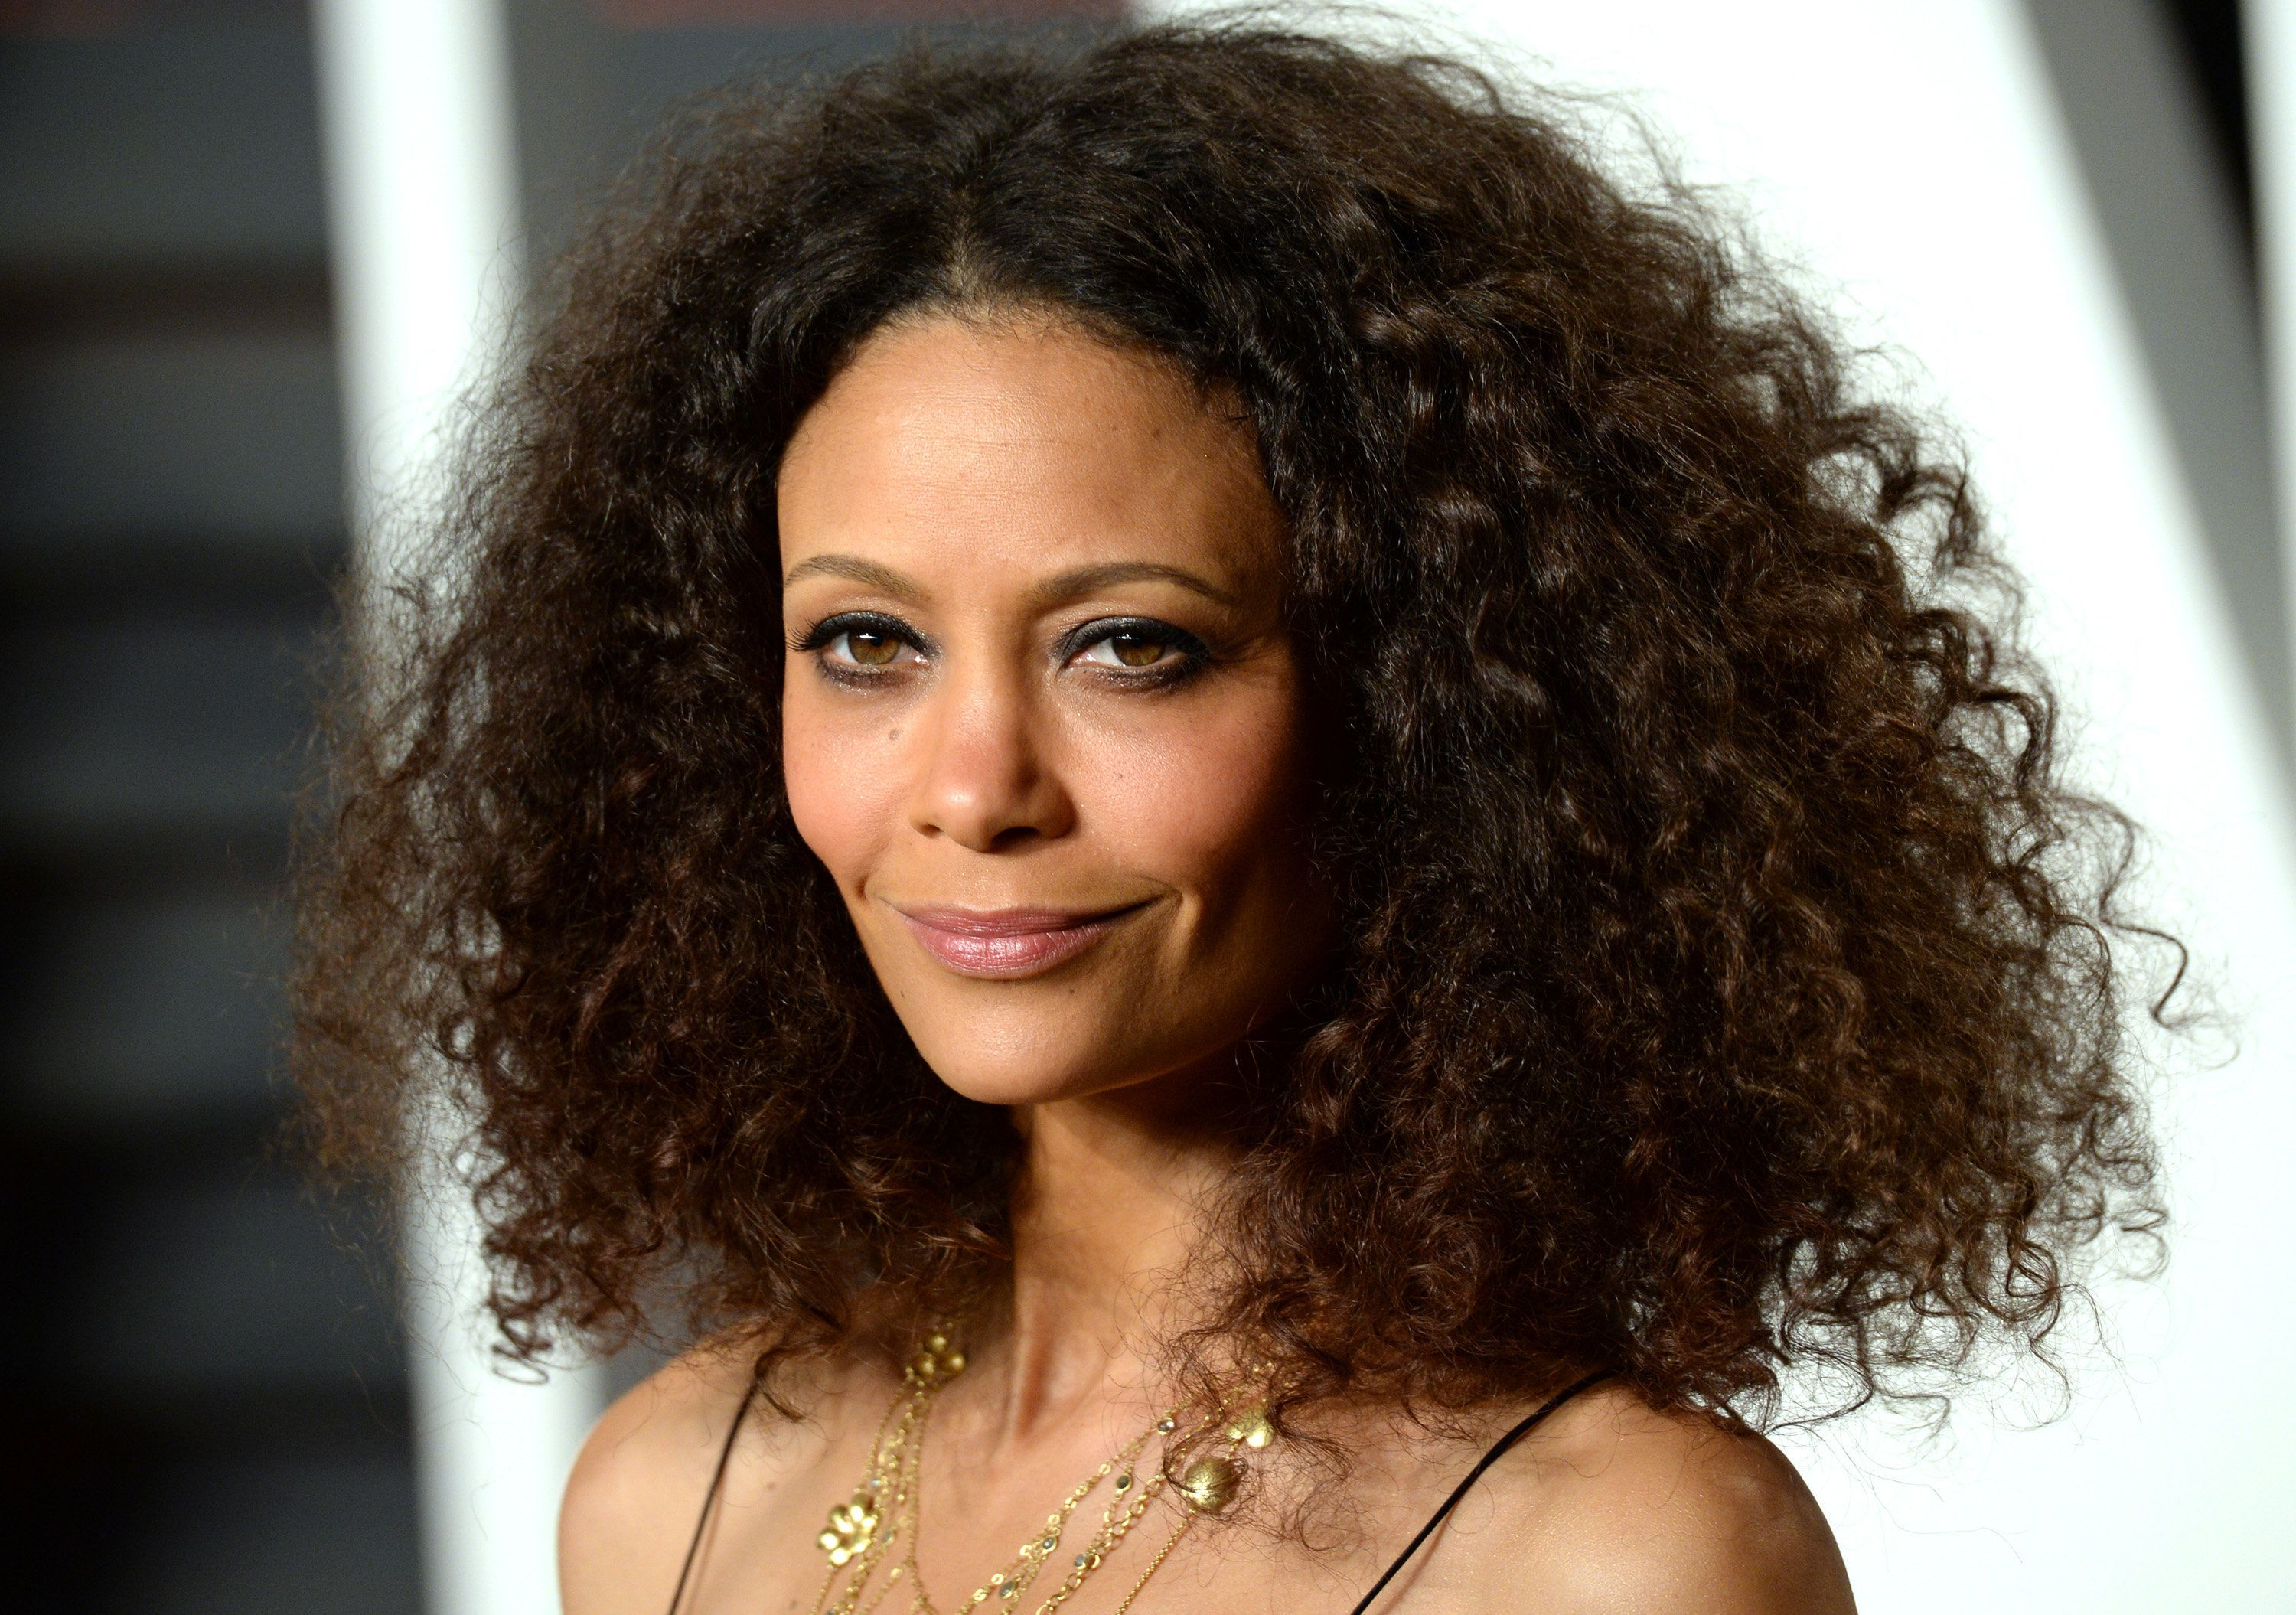 BEVERLY HILLS, CA - FEBRUARY 28:  Thandie Newton attends the 2016 Vanity Fair Oscar Party hosted By Graydon Carter at Wallis Annenberg Center for the Performing Arts on February 28, 2016 in Beverly Hills, California.  (Photo by Anthony Harvey/Getty Images)